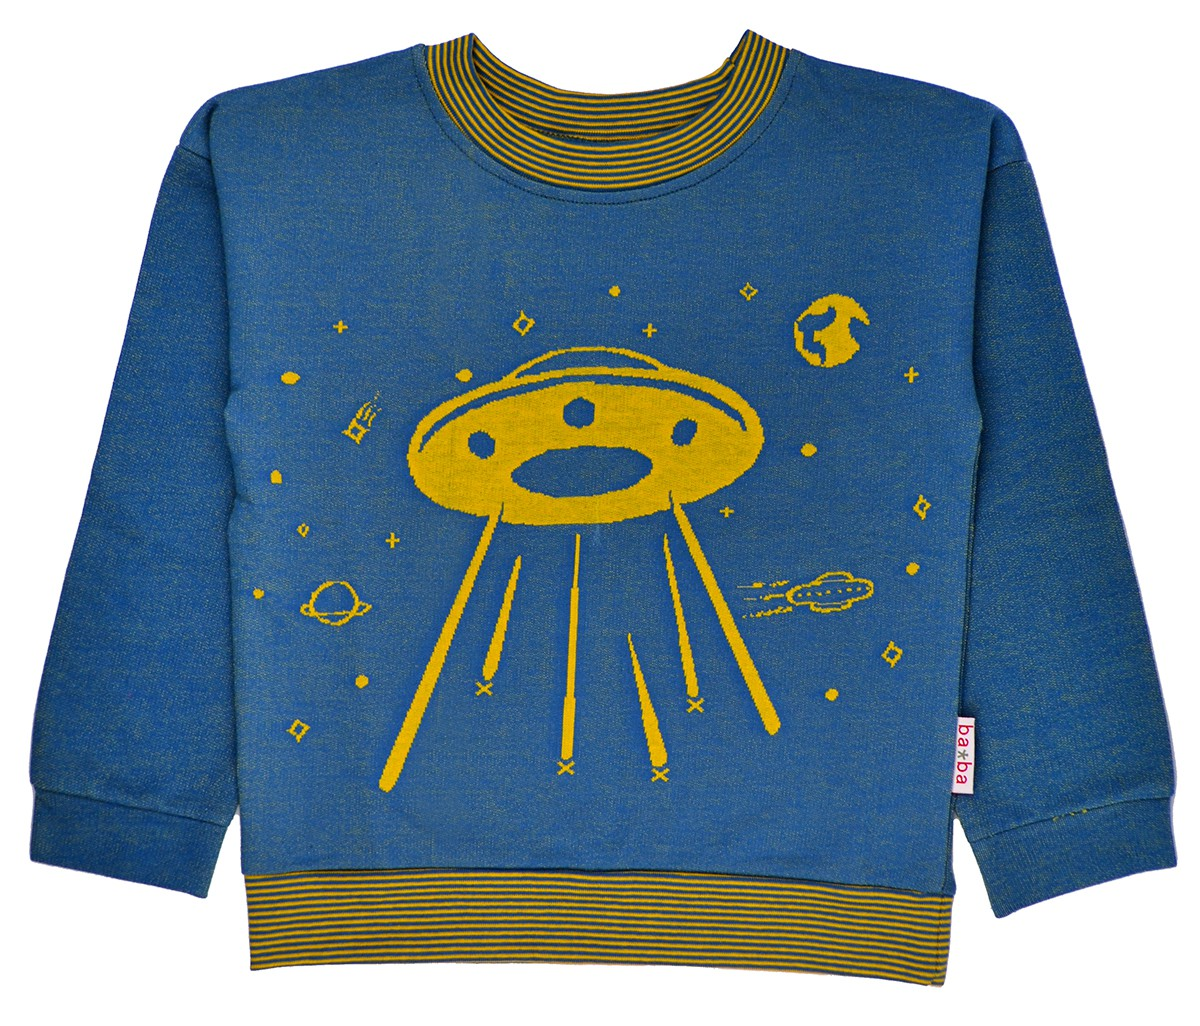 Space jaquard sweater